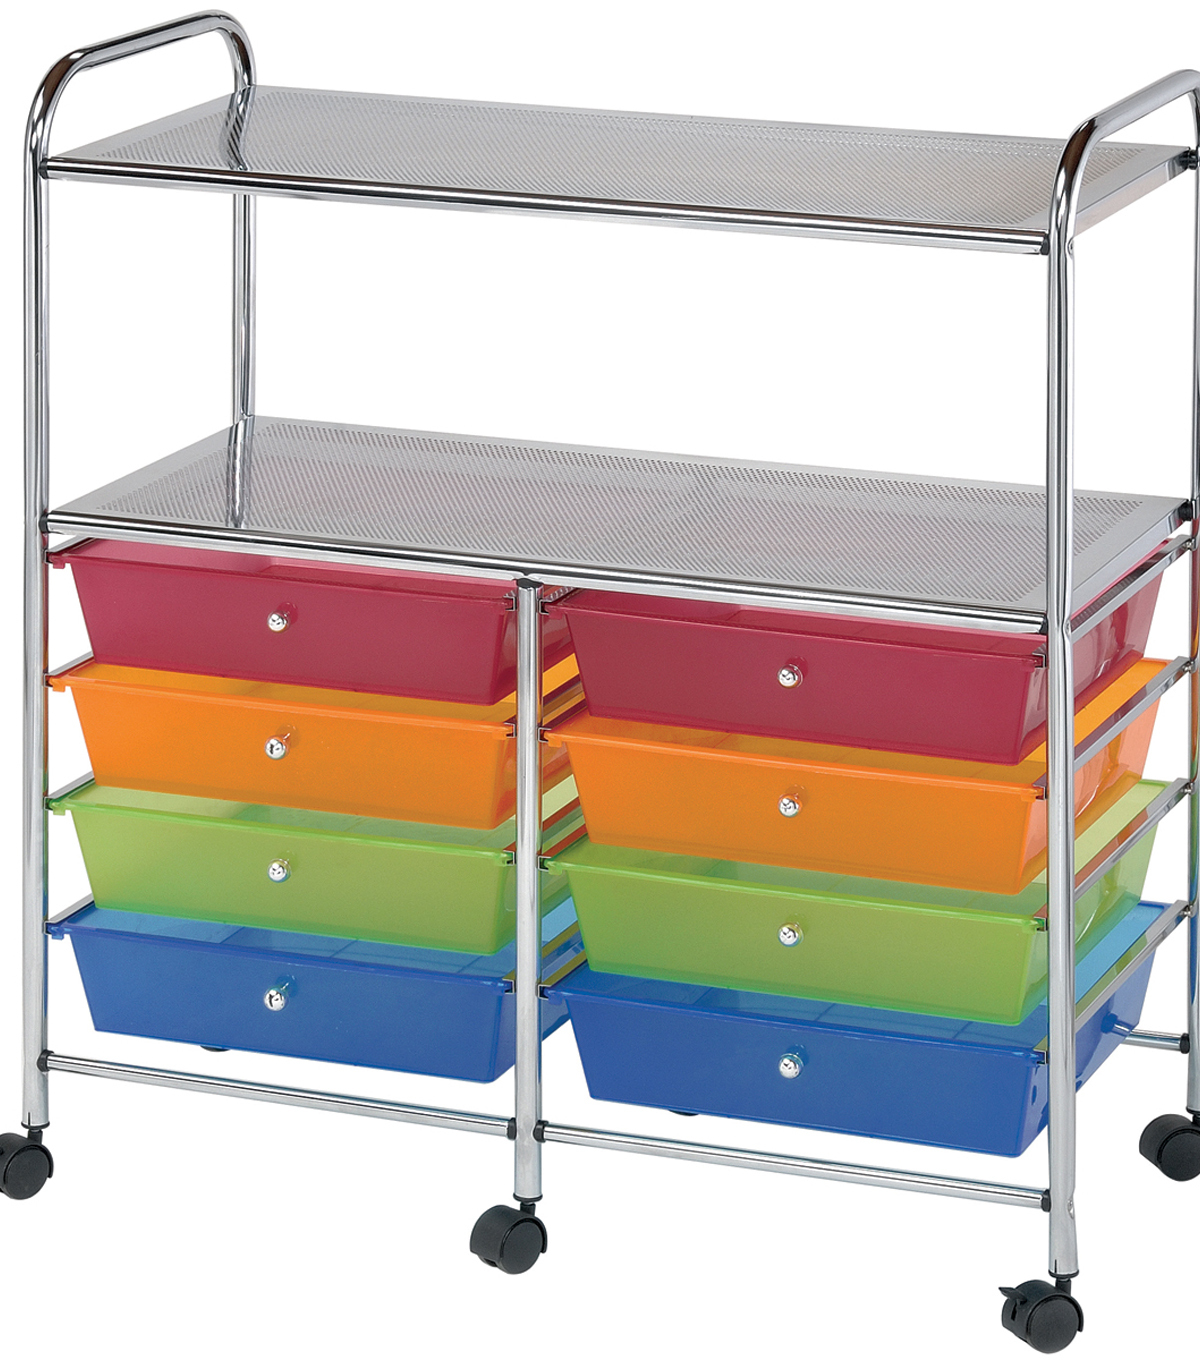 Plastic Storage Plastic Drawers Bins And Boxes JOANN - Craft organizer cart on wheels